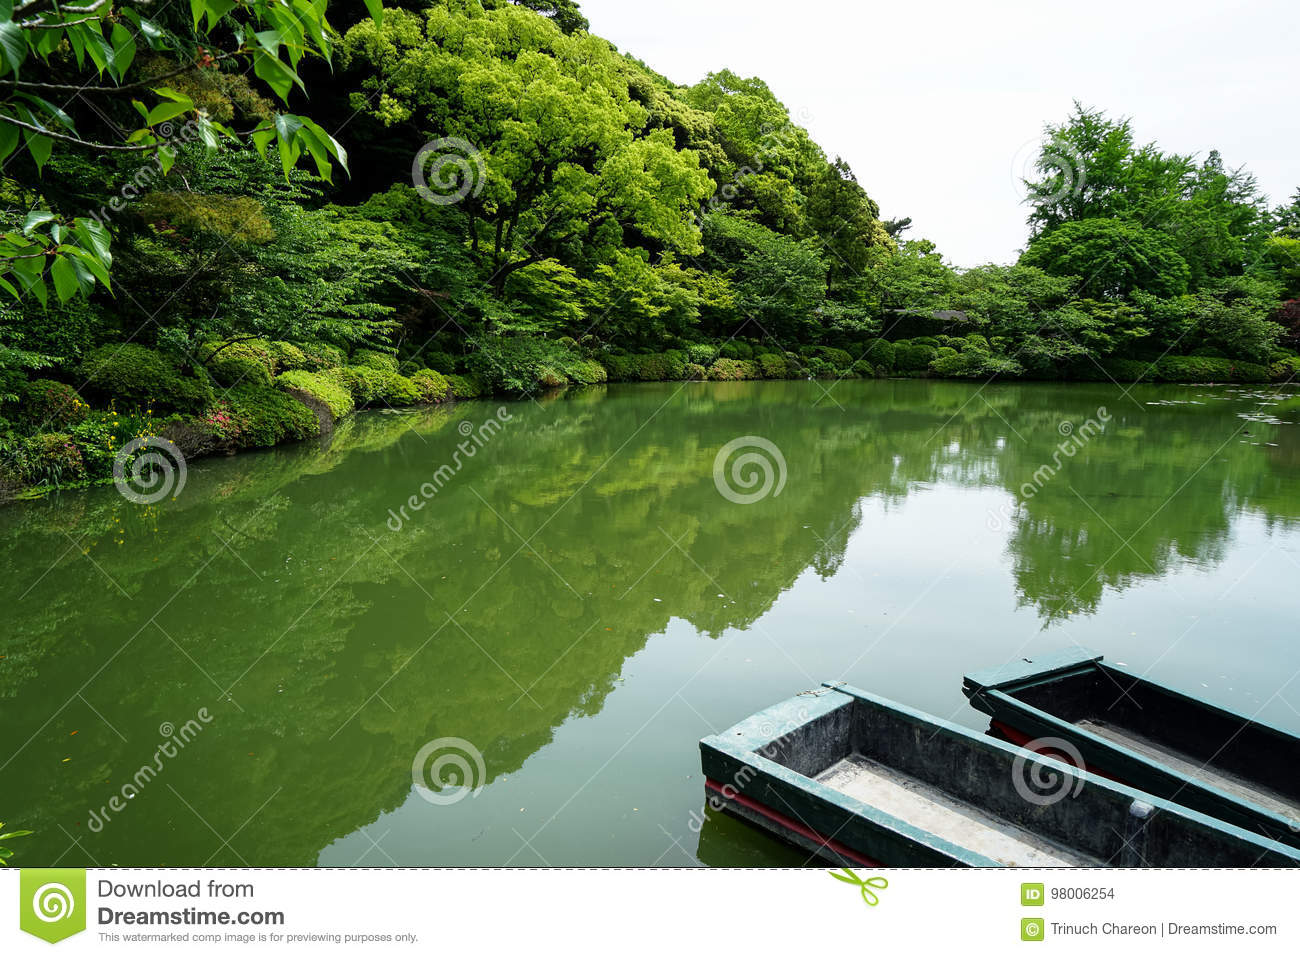 Beautiful Scene Of Lush Green Japanese Garden Mountain With Shades